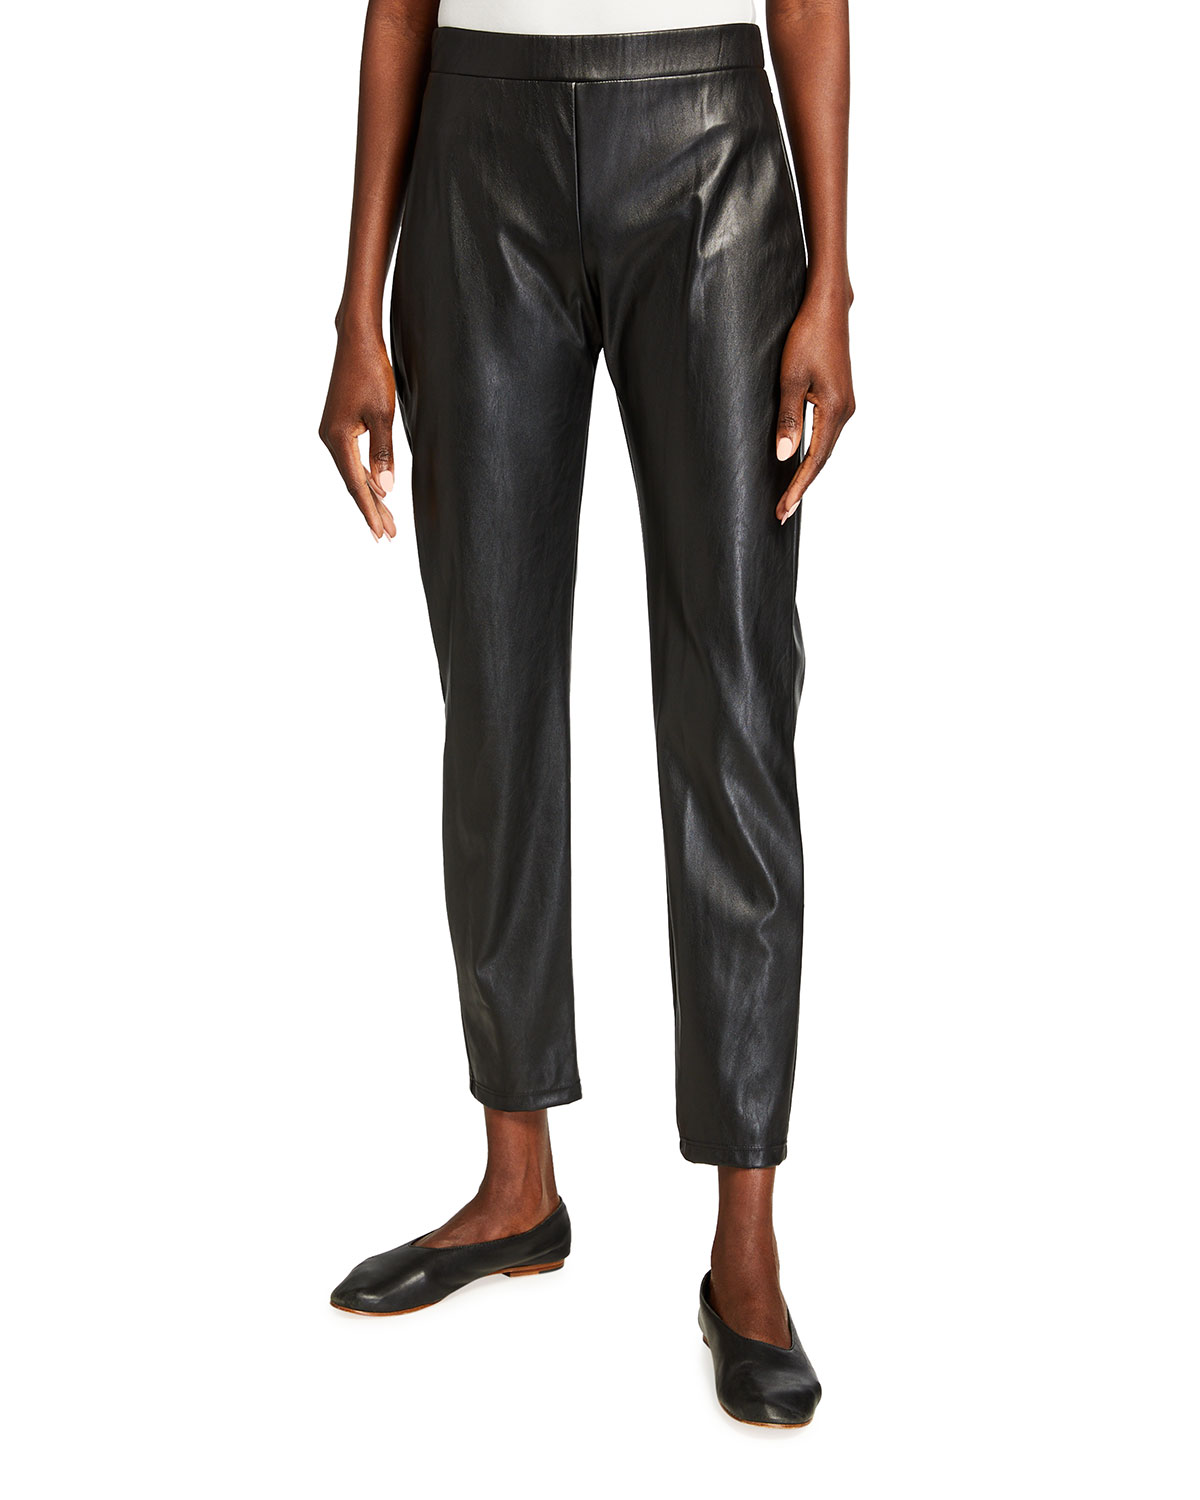 Max Mara Leisure Ranghi Faux Leather Jersey Pants